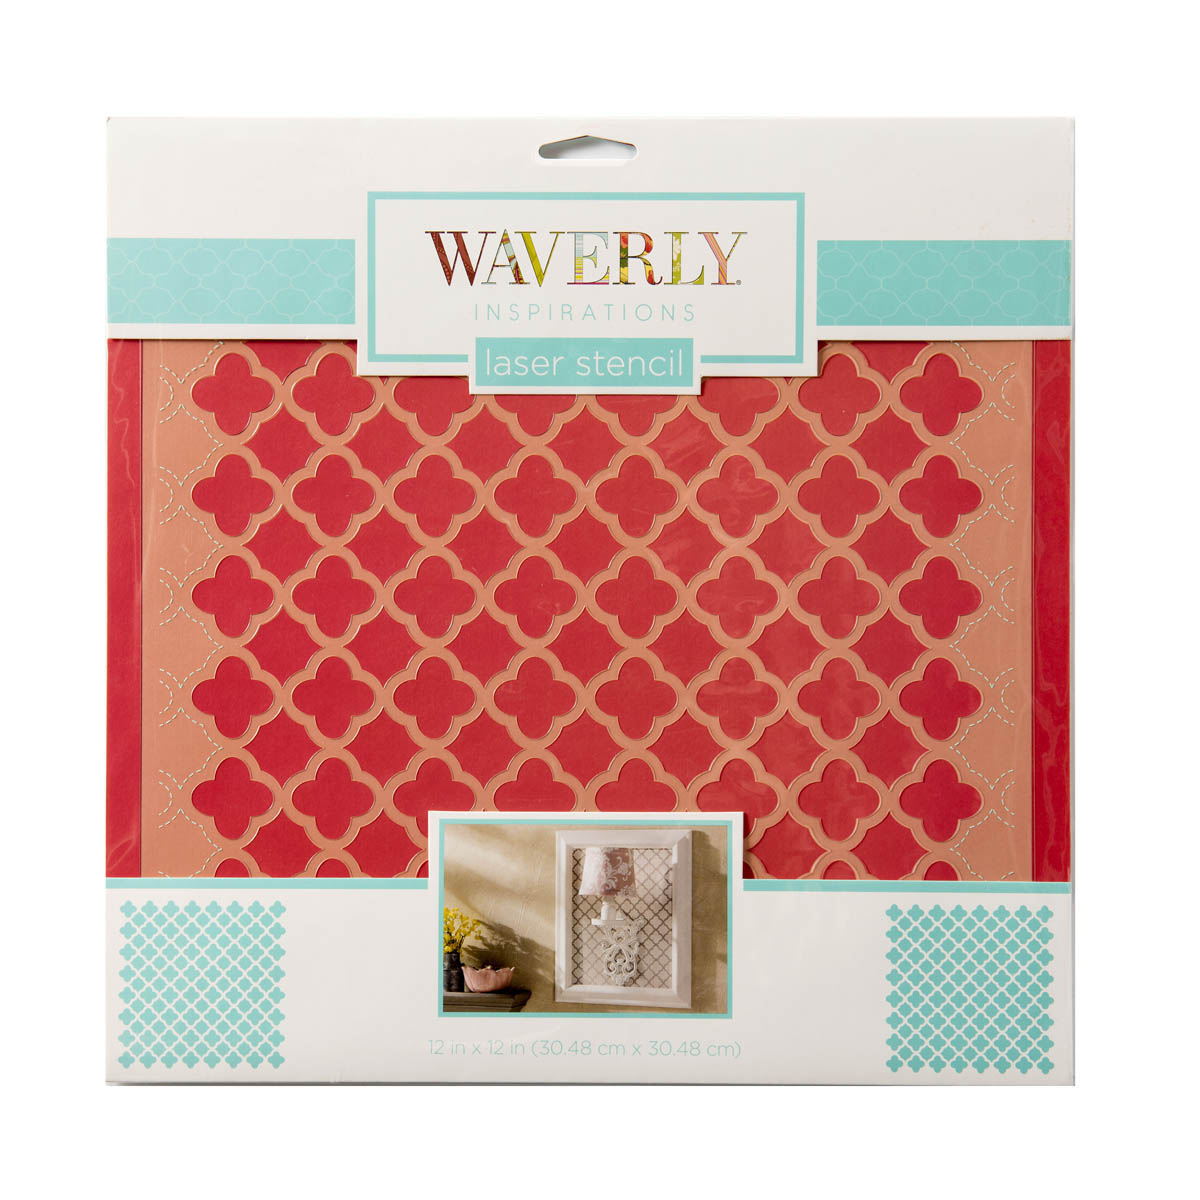 Waverly ® Inspirations Laser Stencils - Décor - Medallion, 12